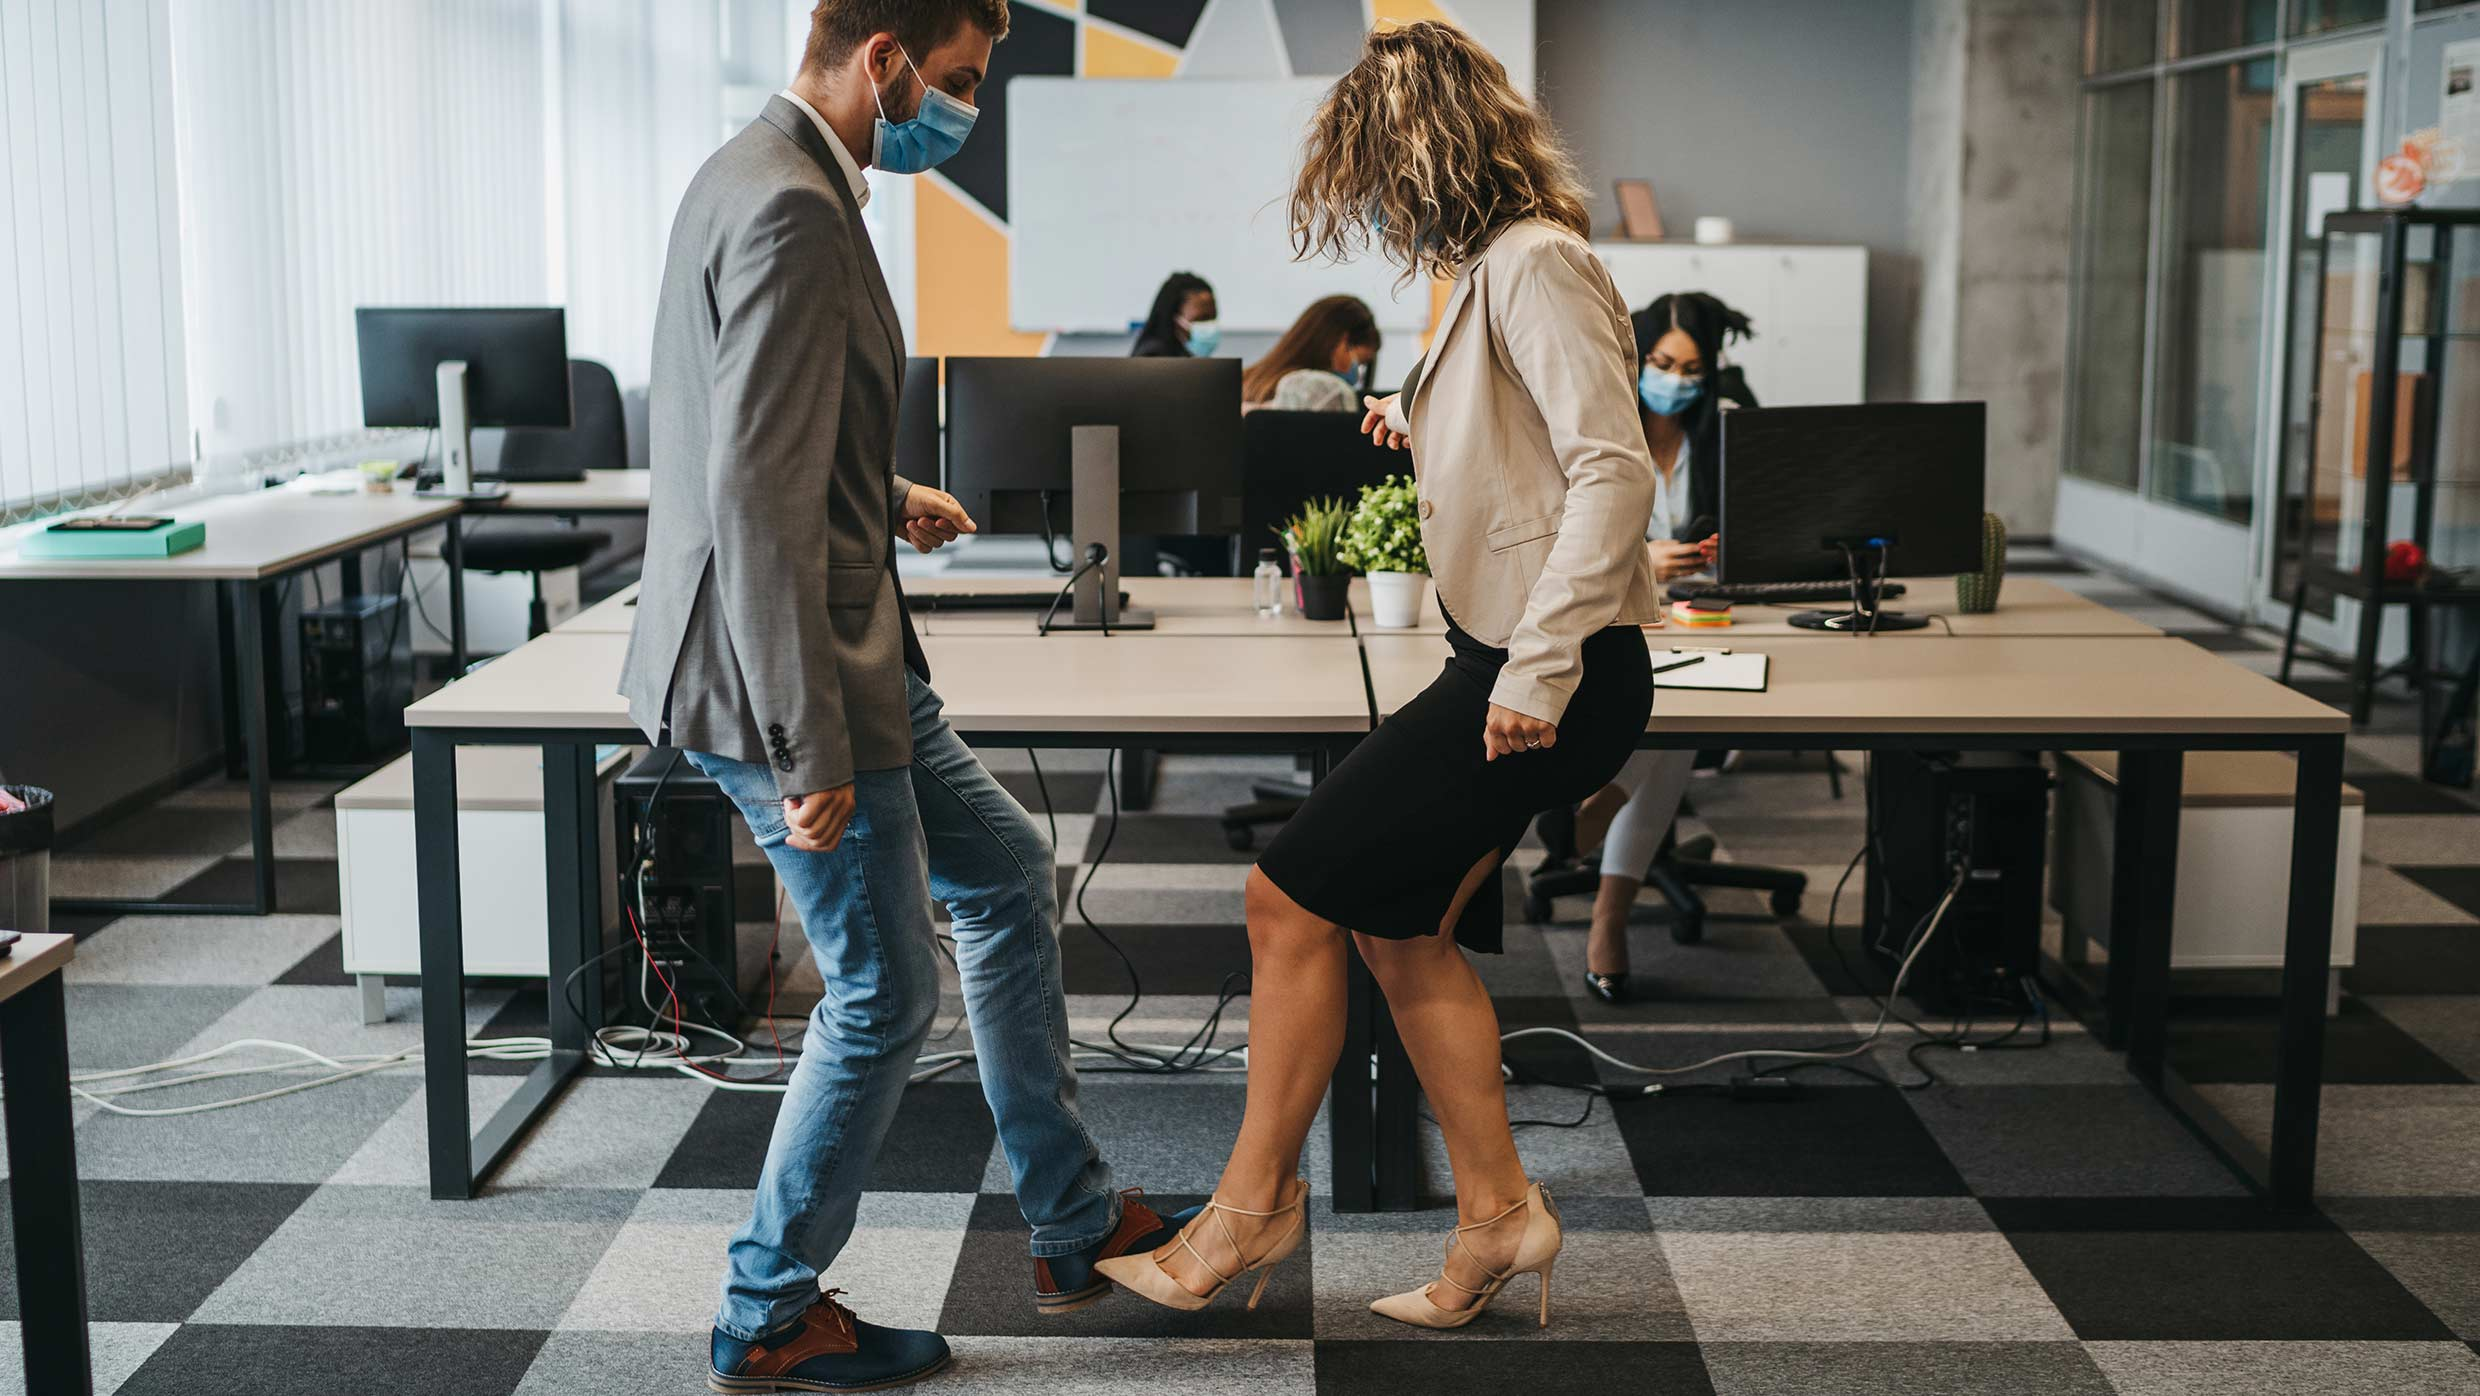 5 ways to improve employee experience during Covid-19